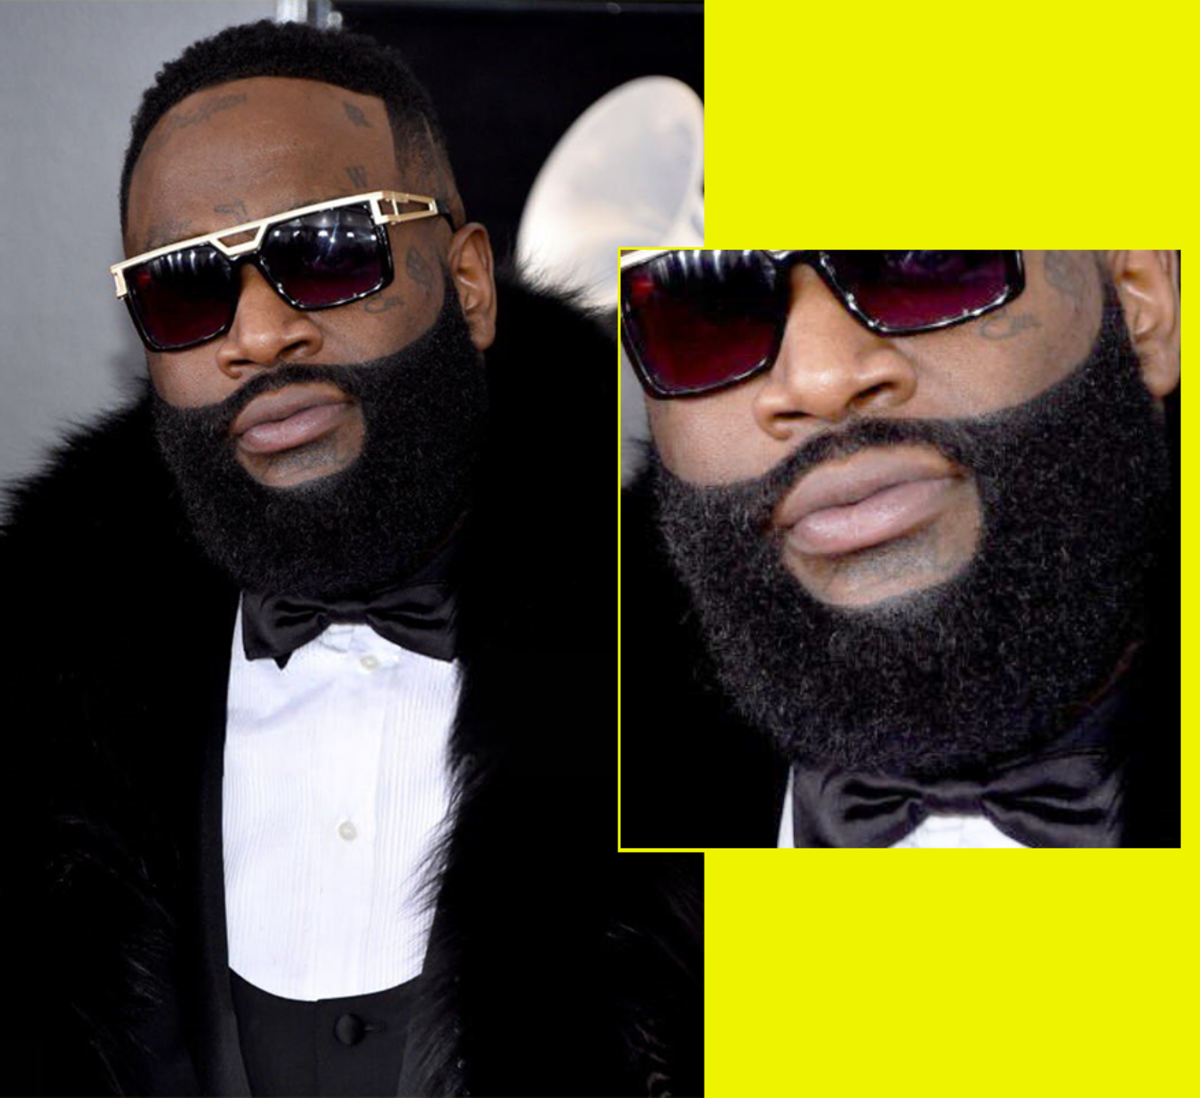 Rick_Ross_Lacefront